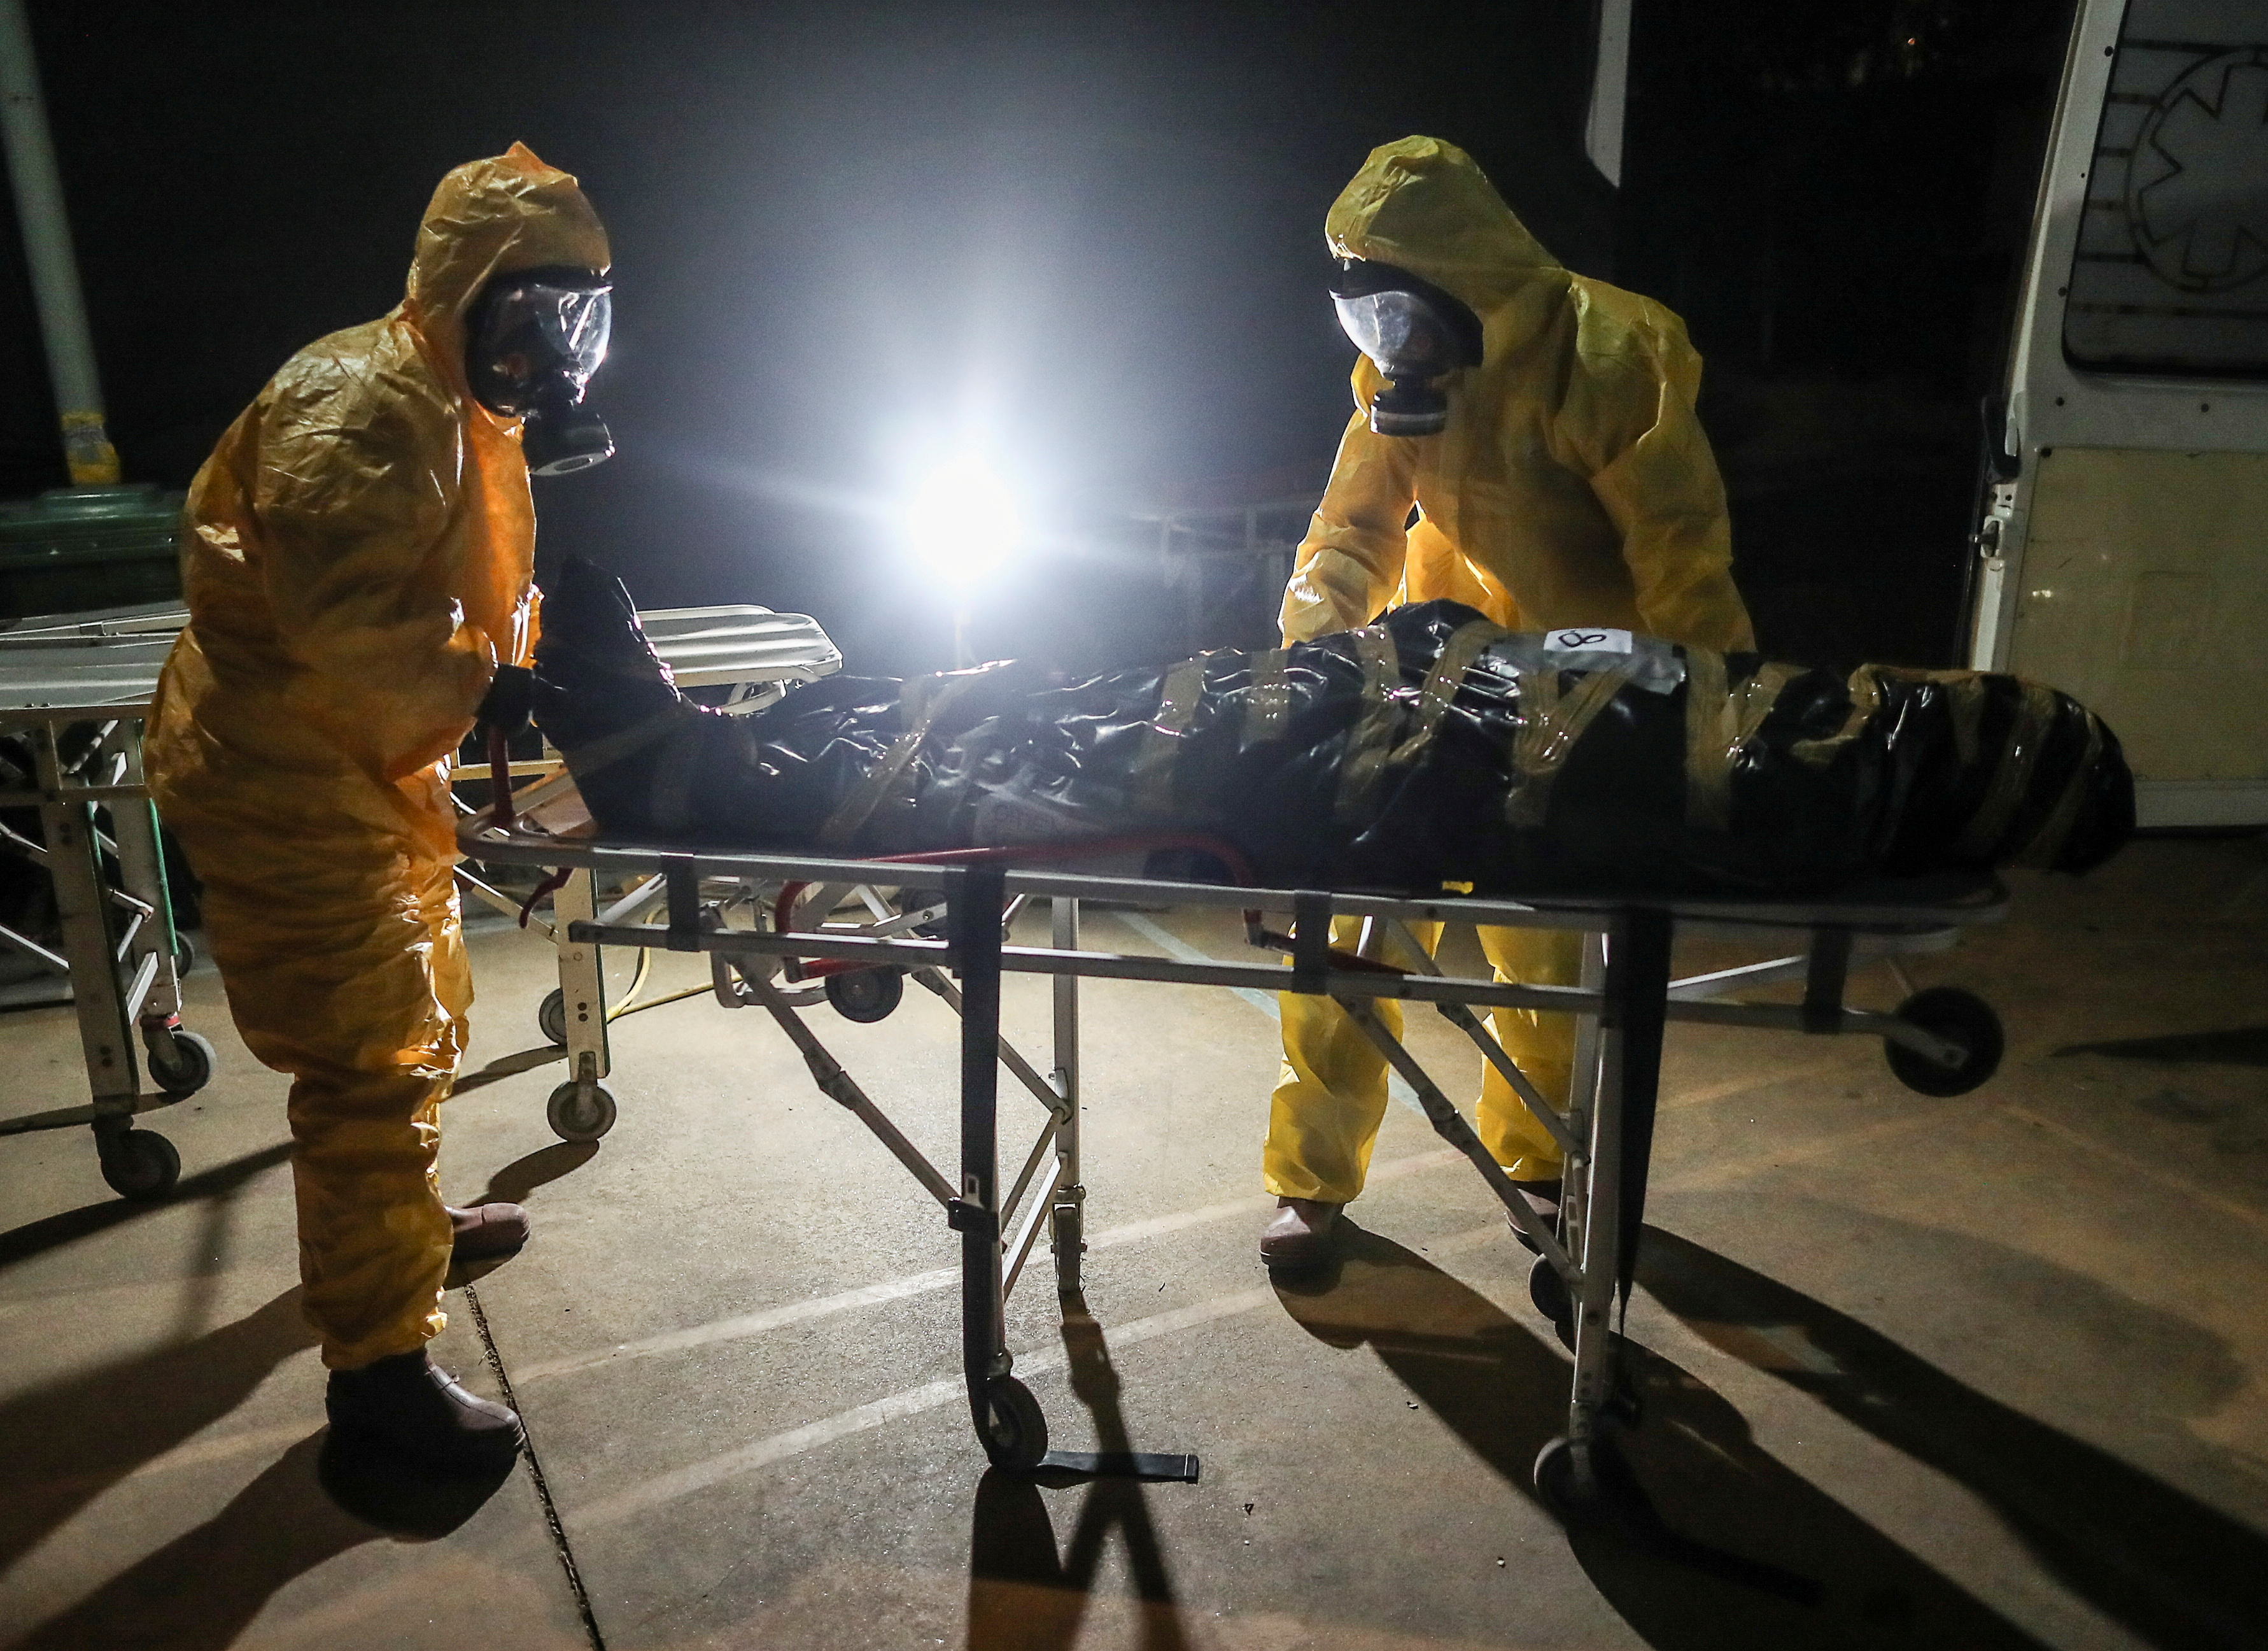 Gaston Rusichi and Oscar Oliva, members of the Department of High Risk Units (DUAR) push a stretcher with a body of a person who died from the coronavirus disease (COVID-19), at DUAR's headquarters, in Cordoba, Argentina, July 11, 2021. REUTERS/Agustin Marcarian/File Photo